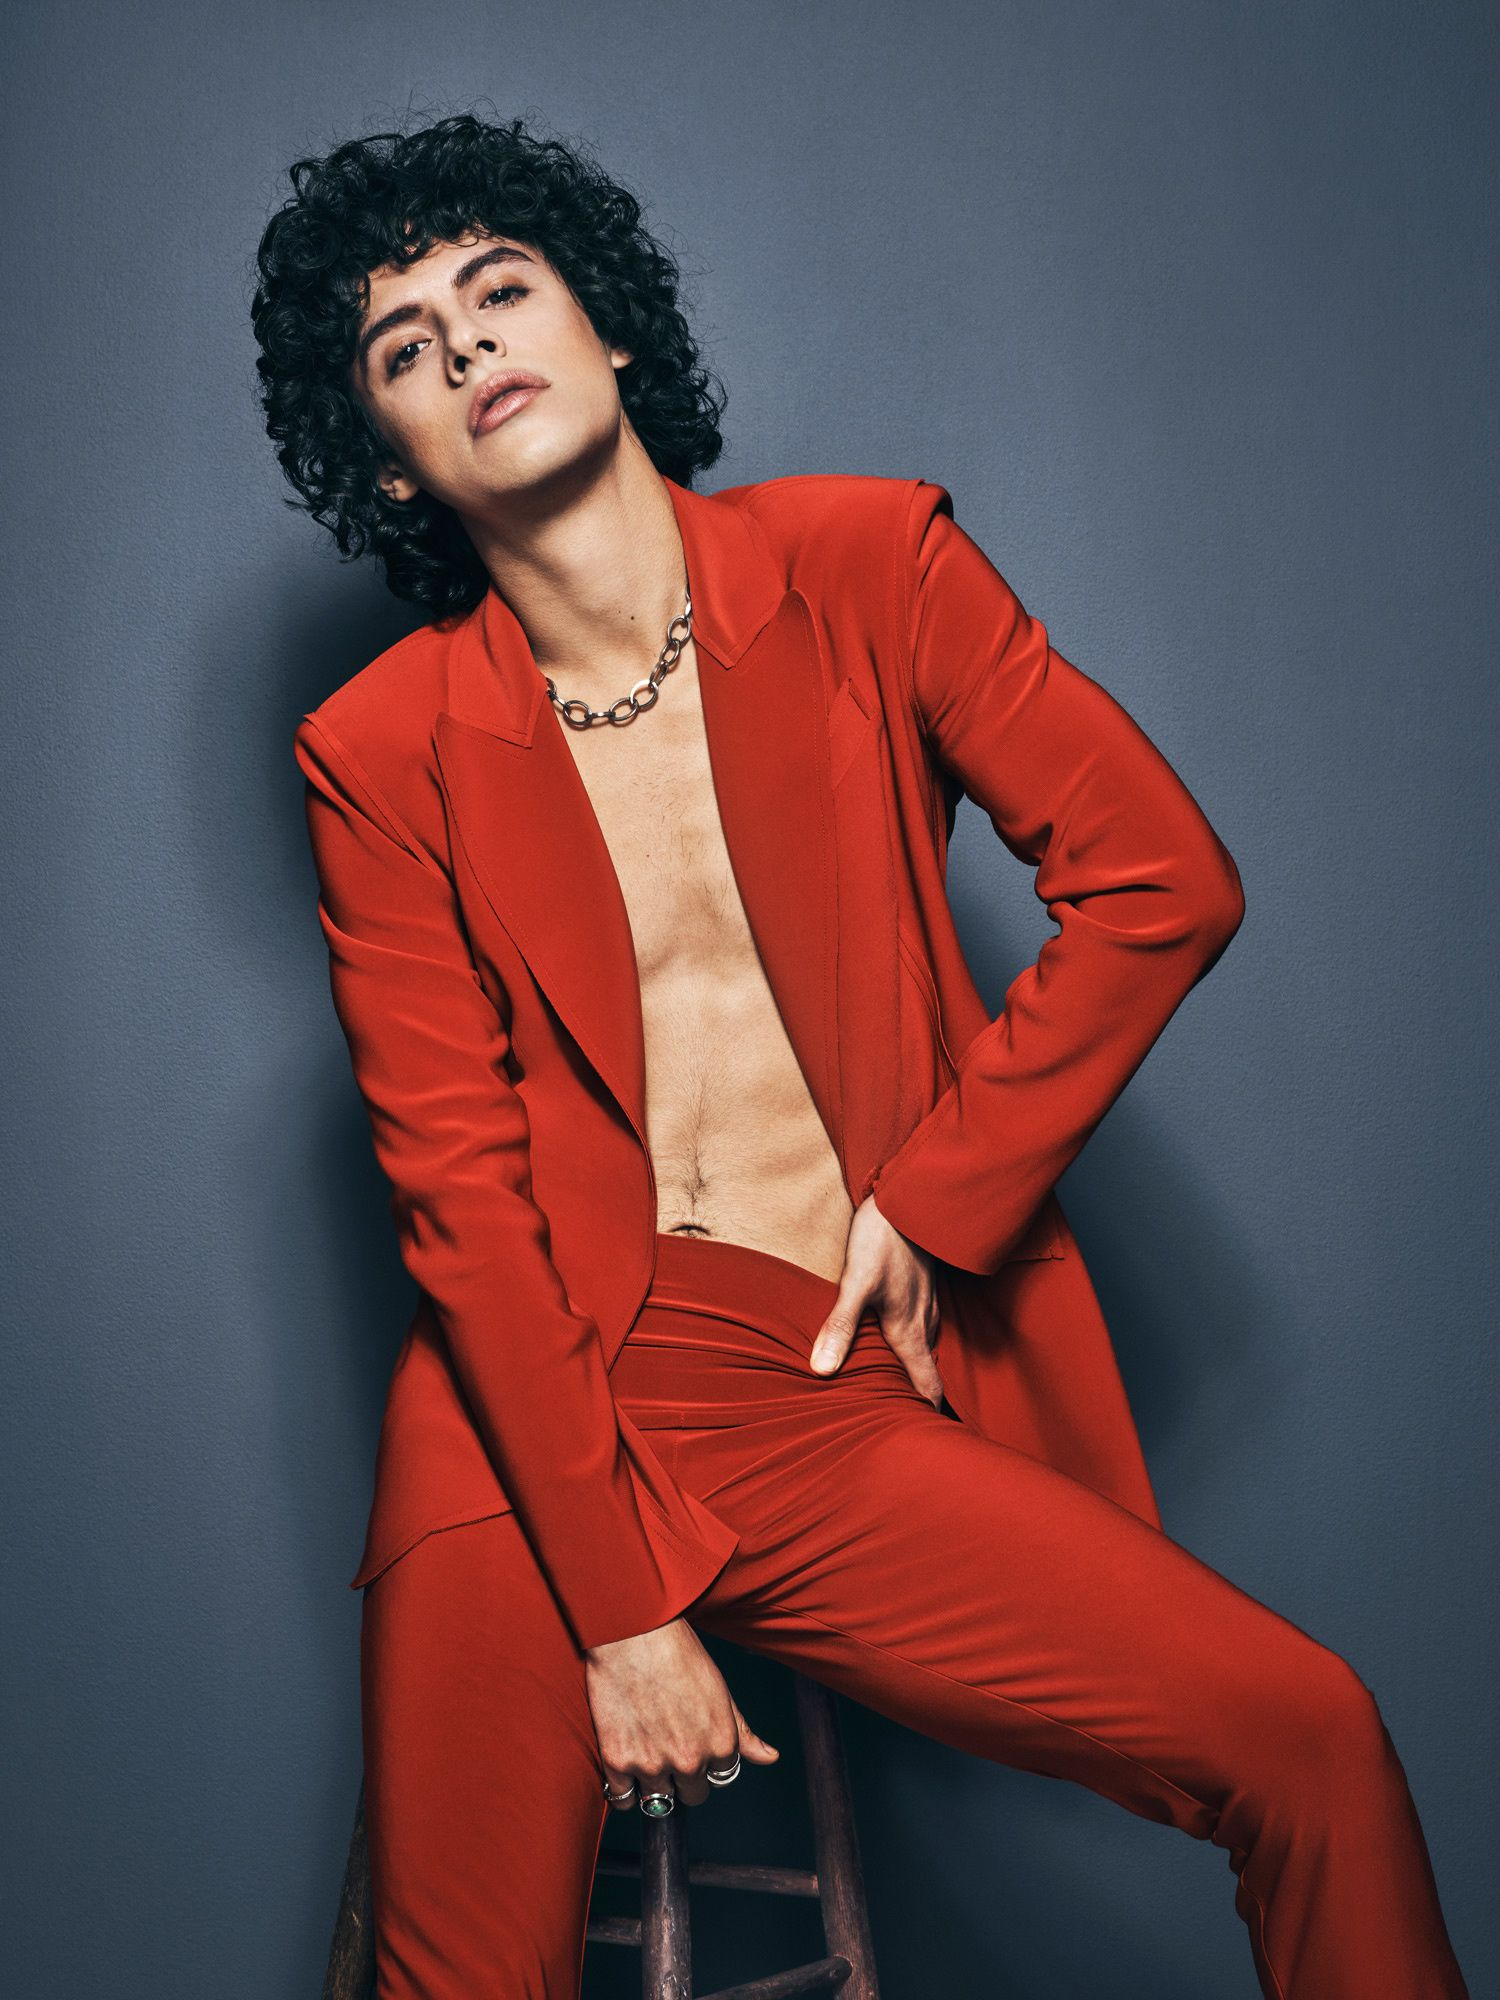 Jonny Beauchamp shirtless in a scarlet red suit.